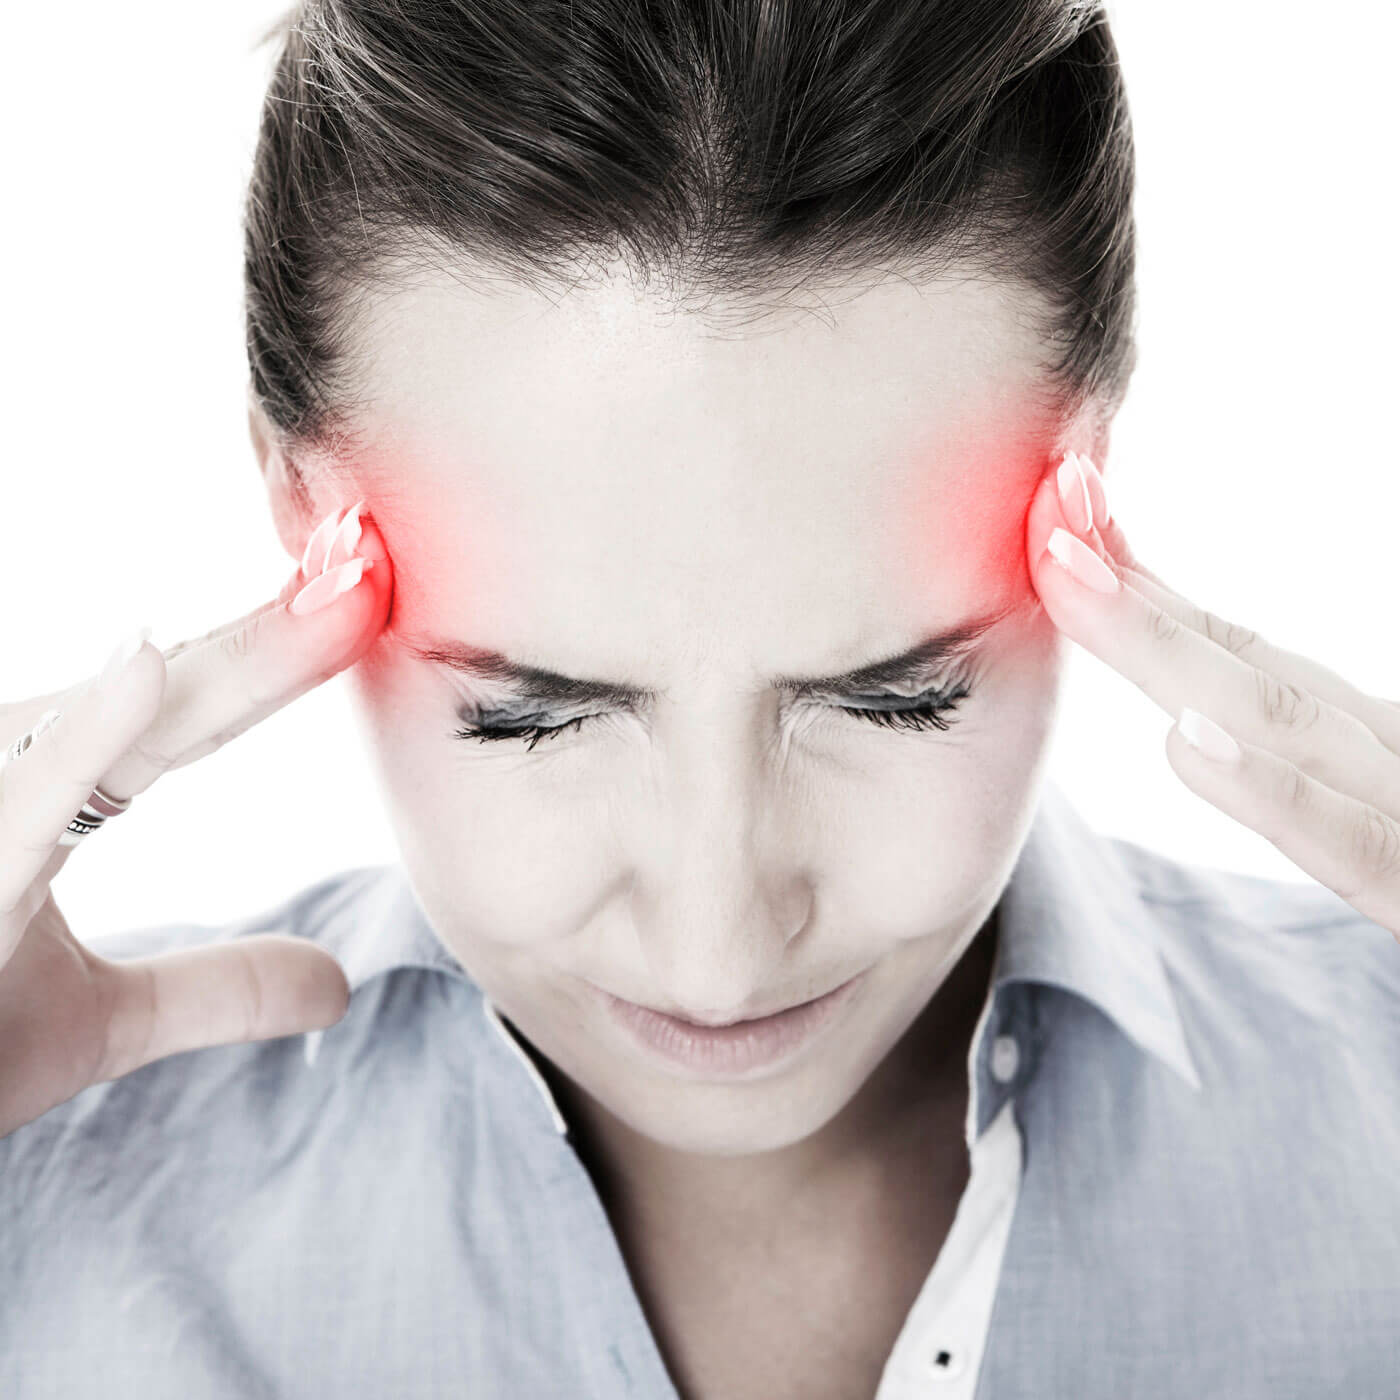 Essential Chiropractic and Healthcare Clinic - Chiropractic Conditions Headache and Migraine Treatment and Relief